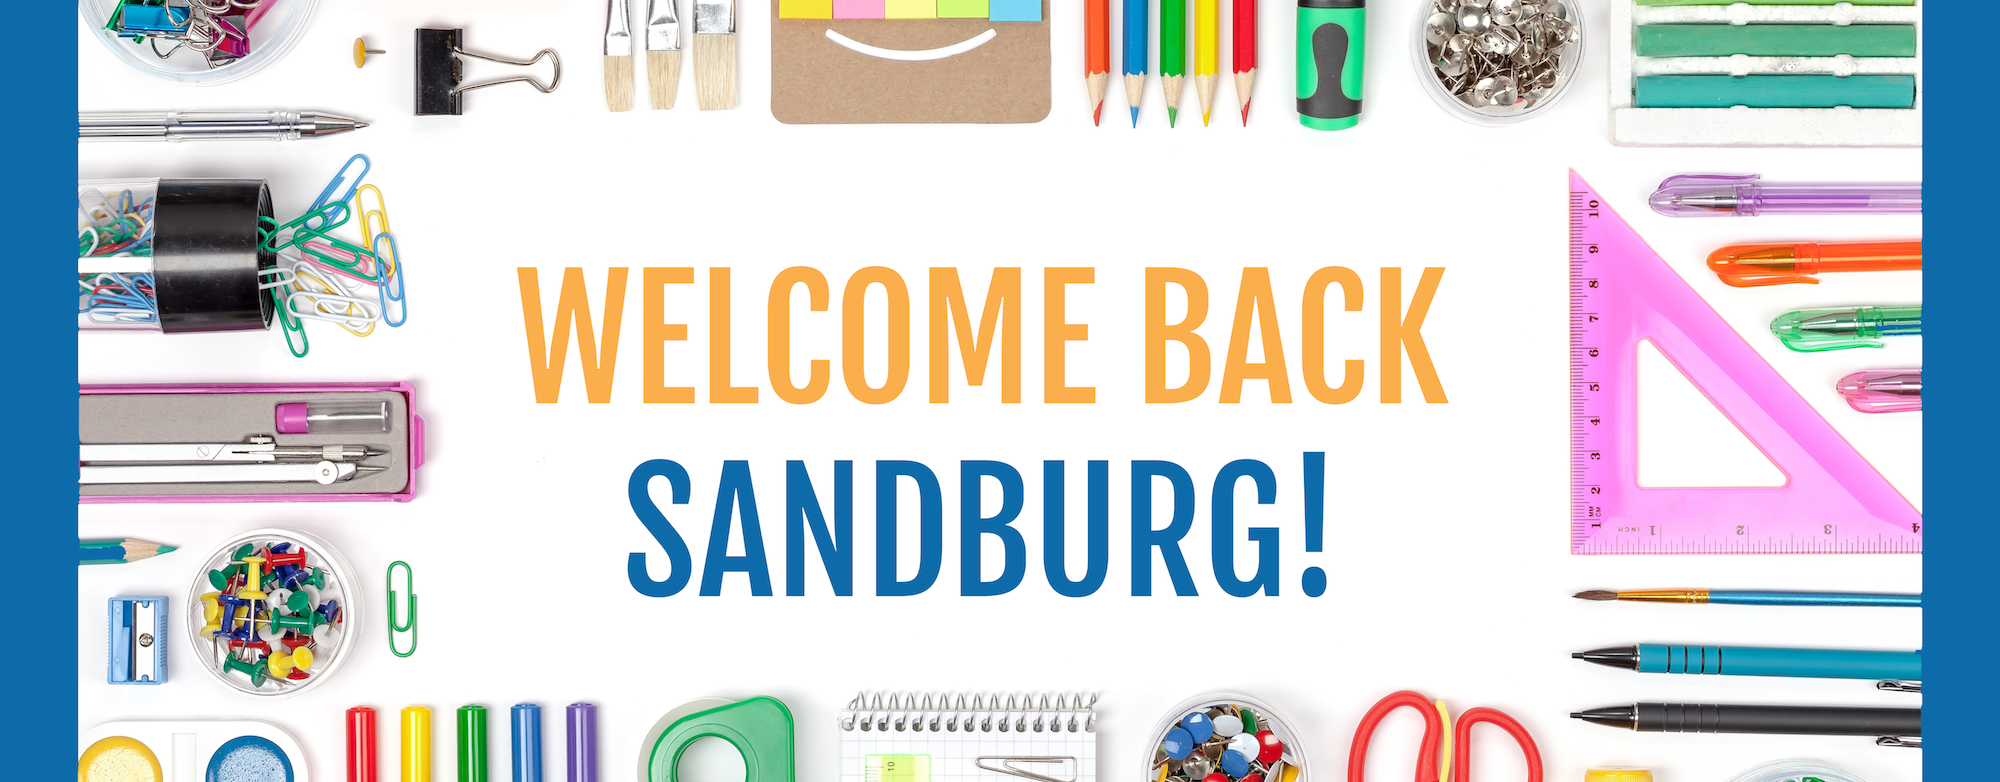 Welcome Back Sandburg